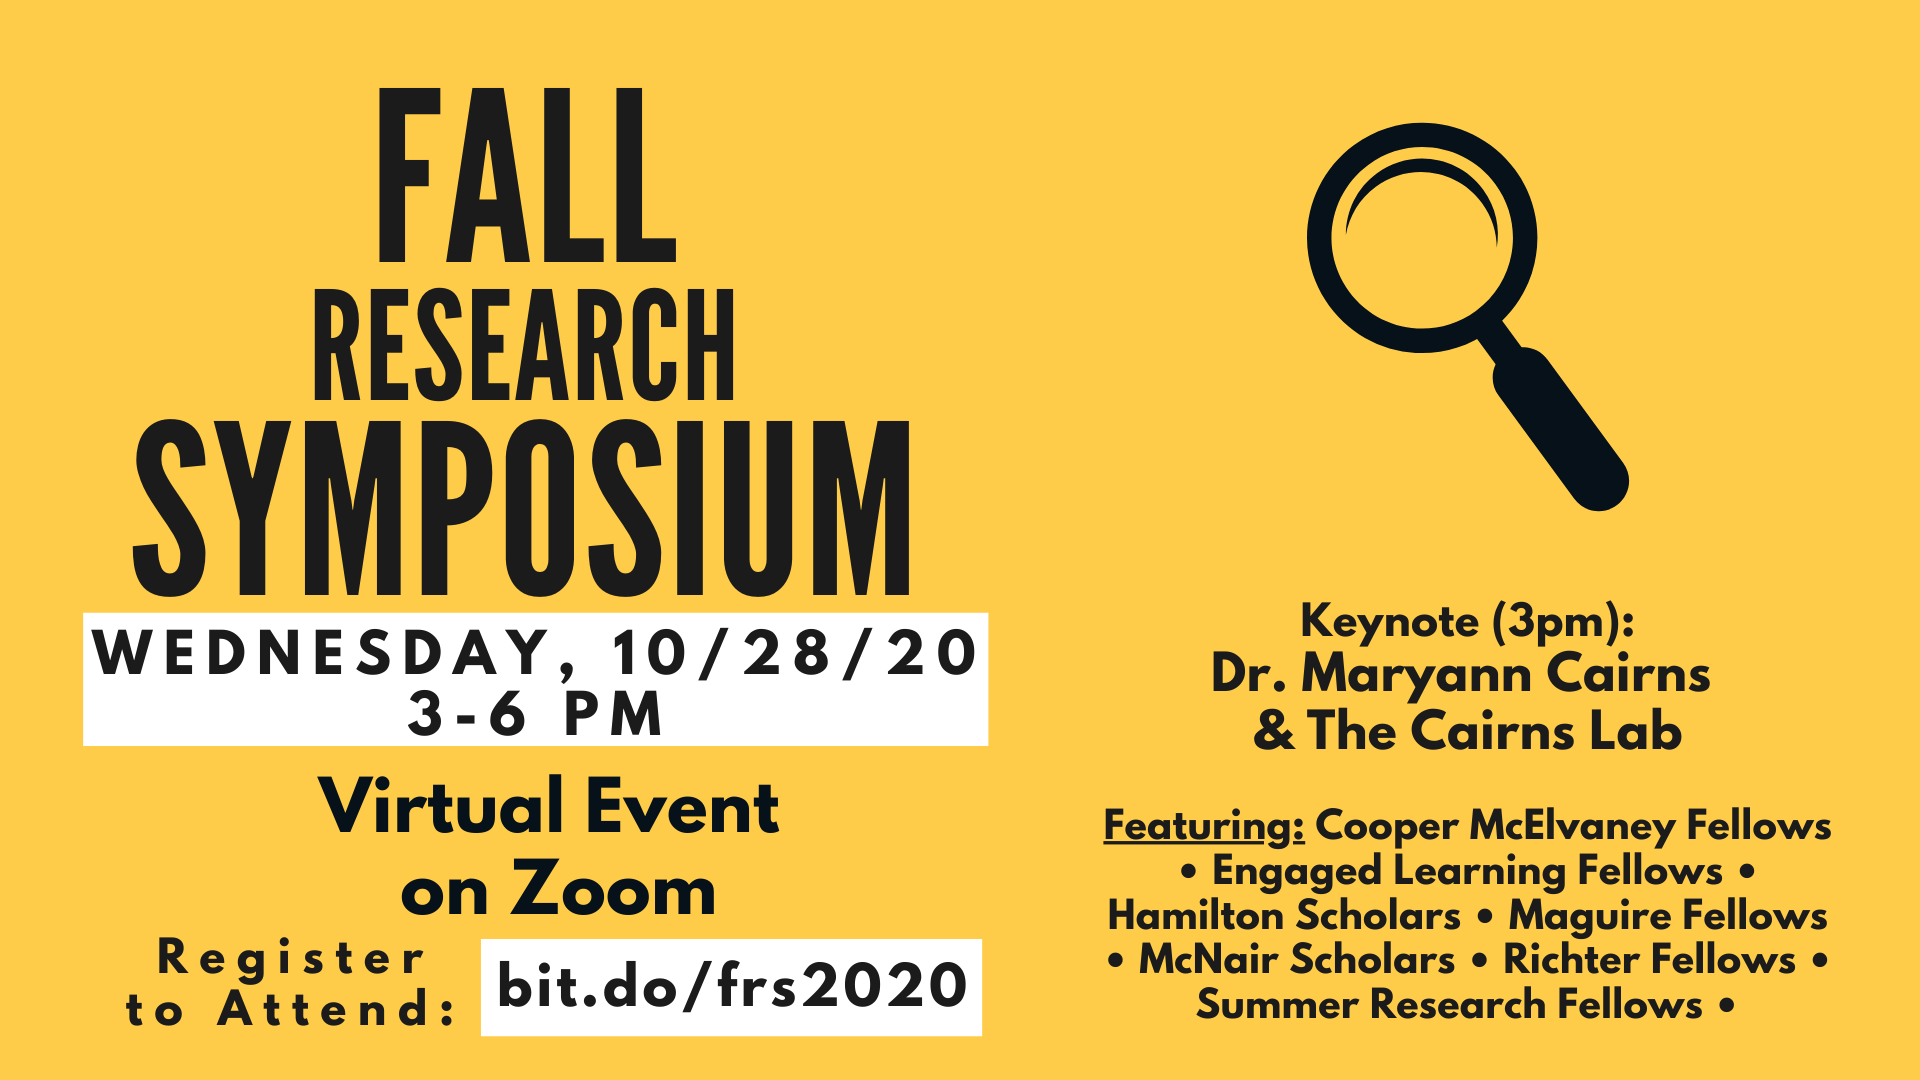 Fall Research Symposium